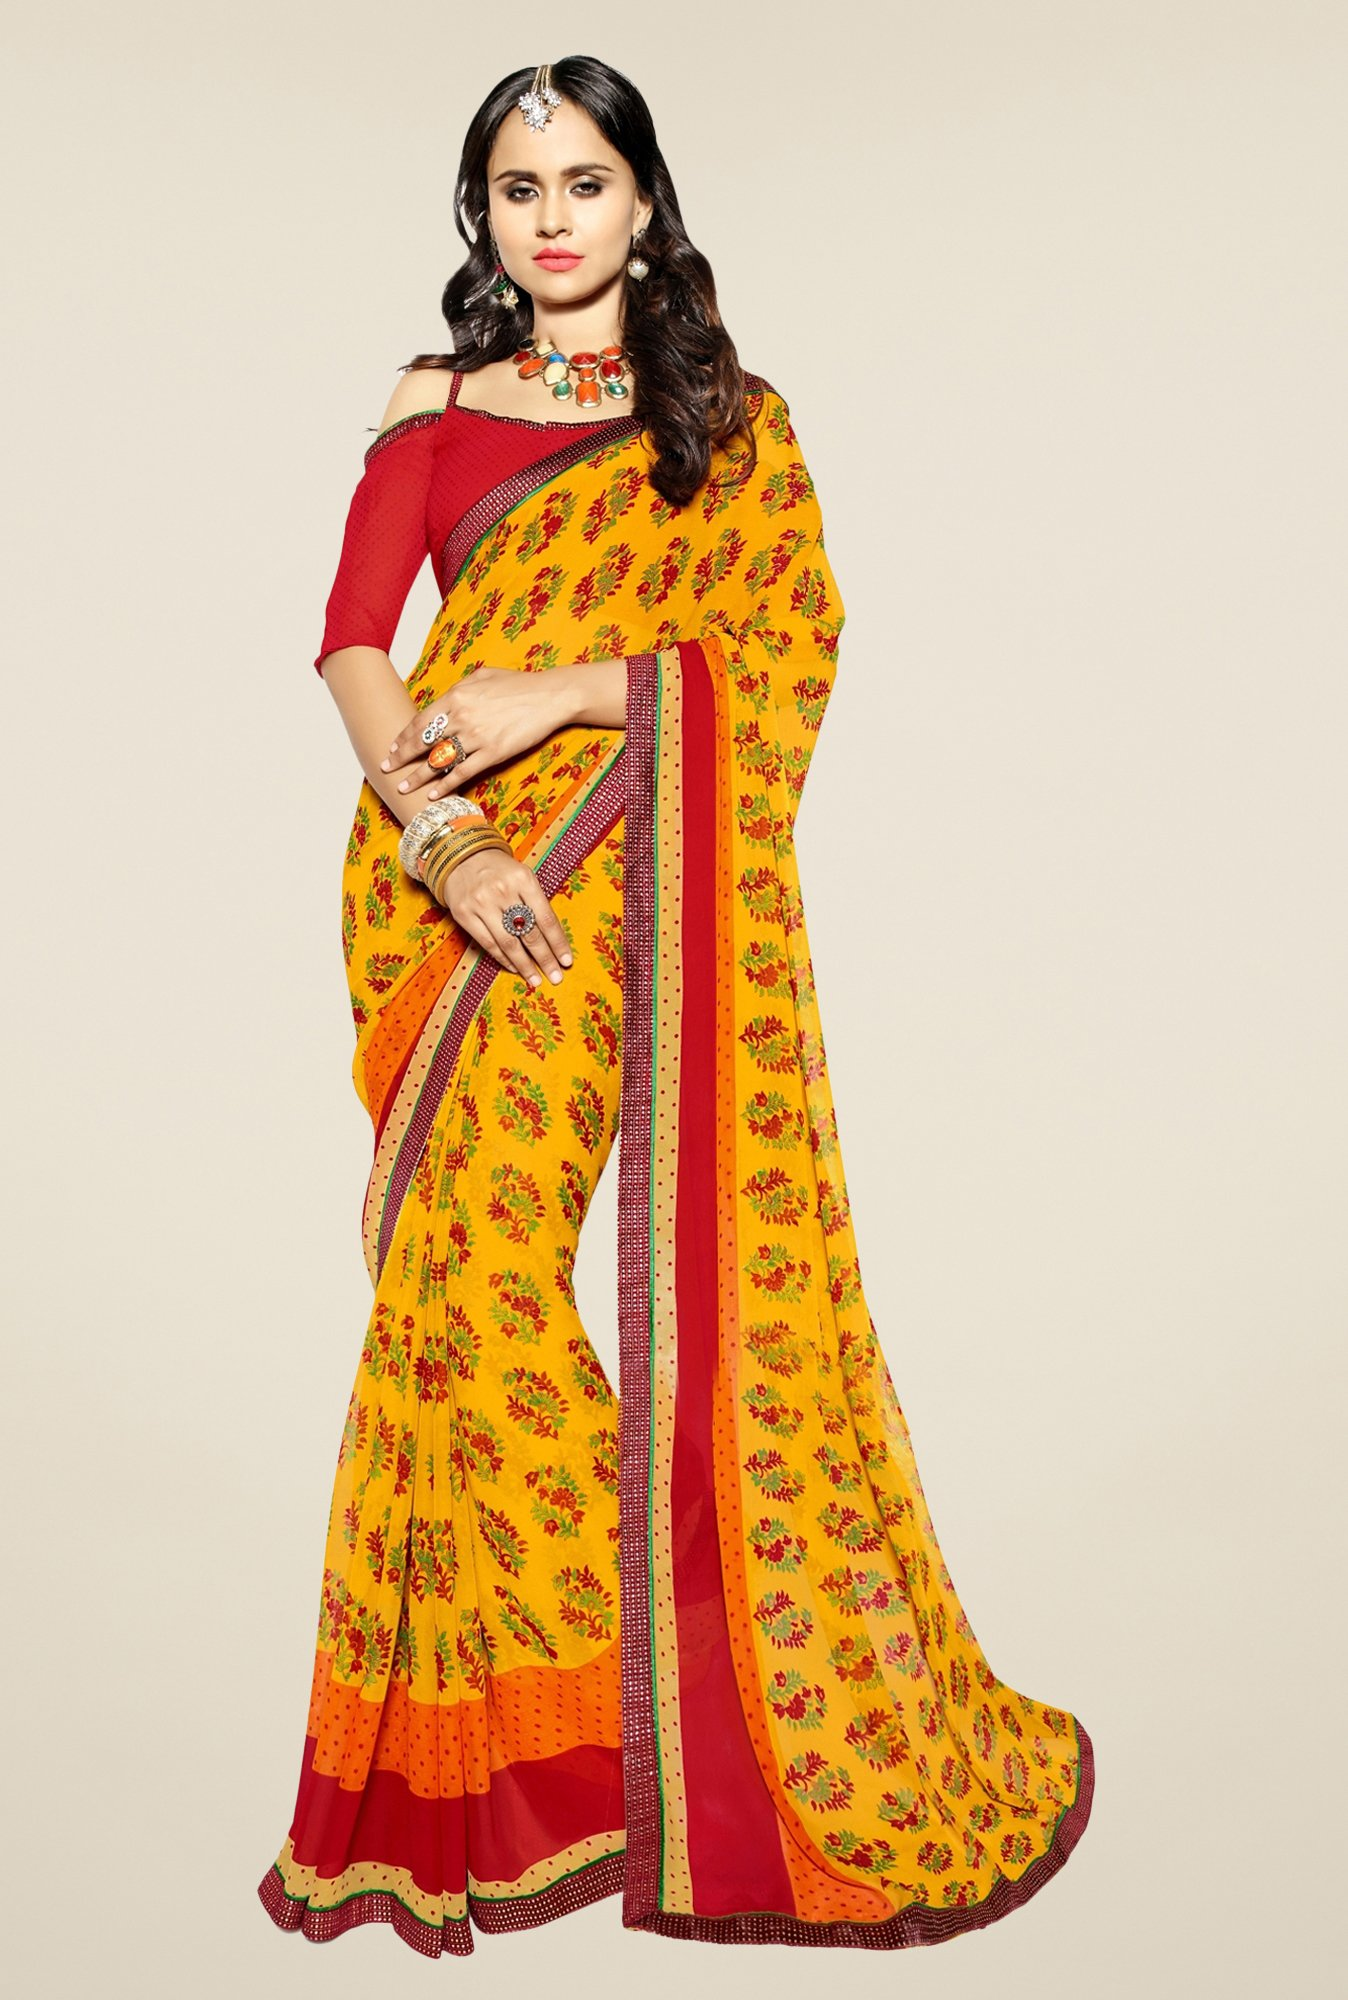 Triveni Yellow Floral Print Faux Georgette Saree